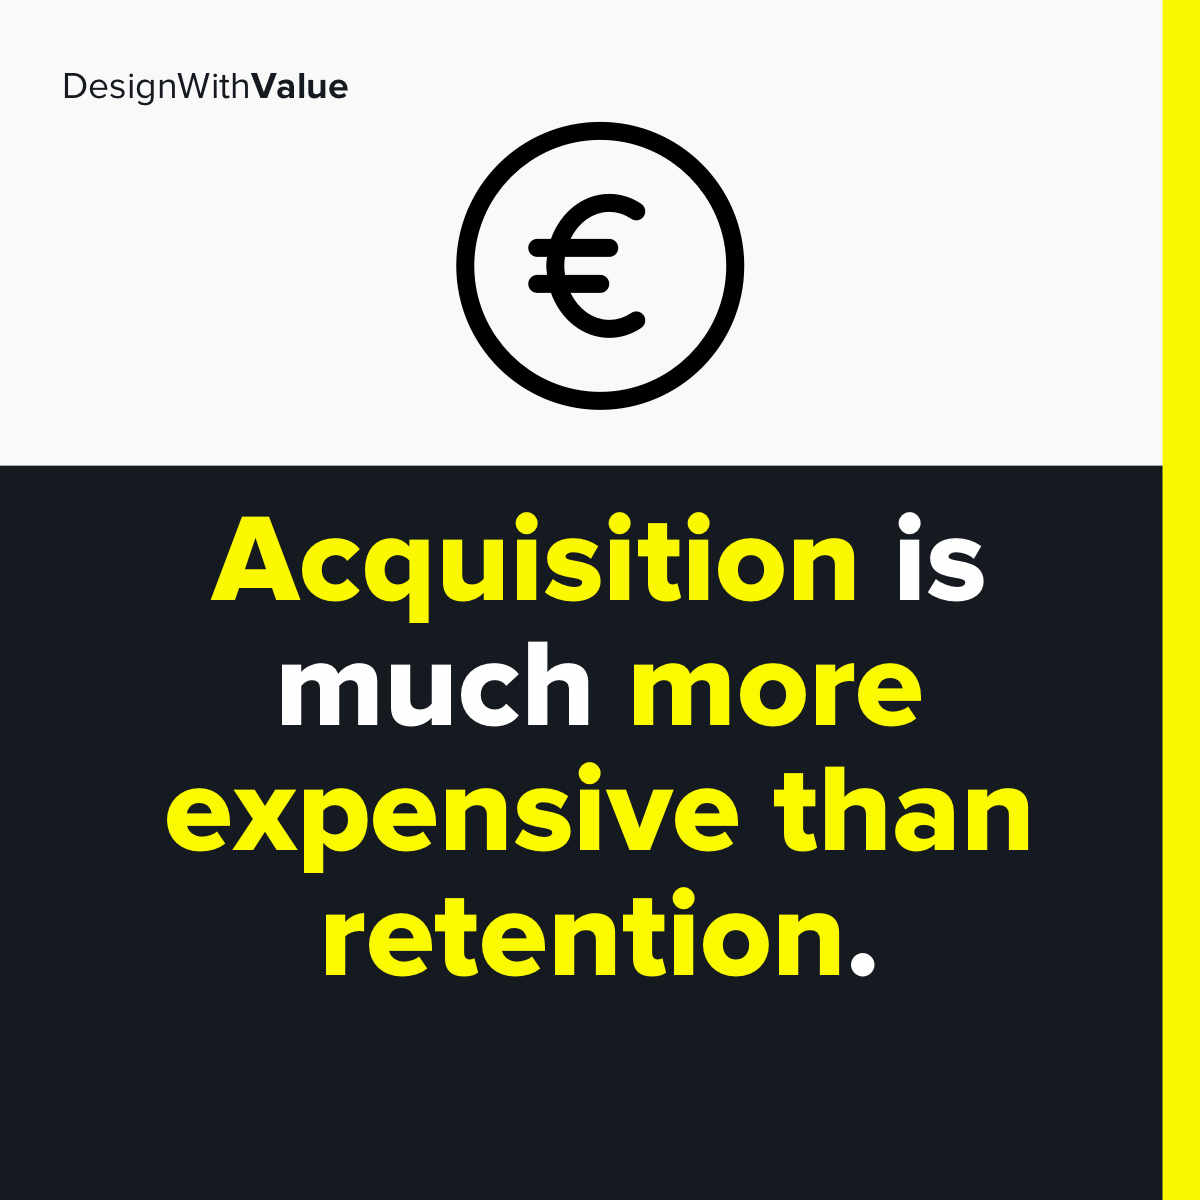 Second keep in mind that acquisition is much more expensive than retention.